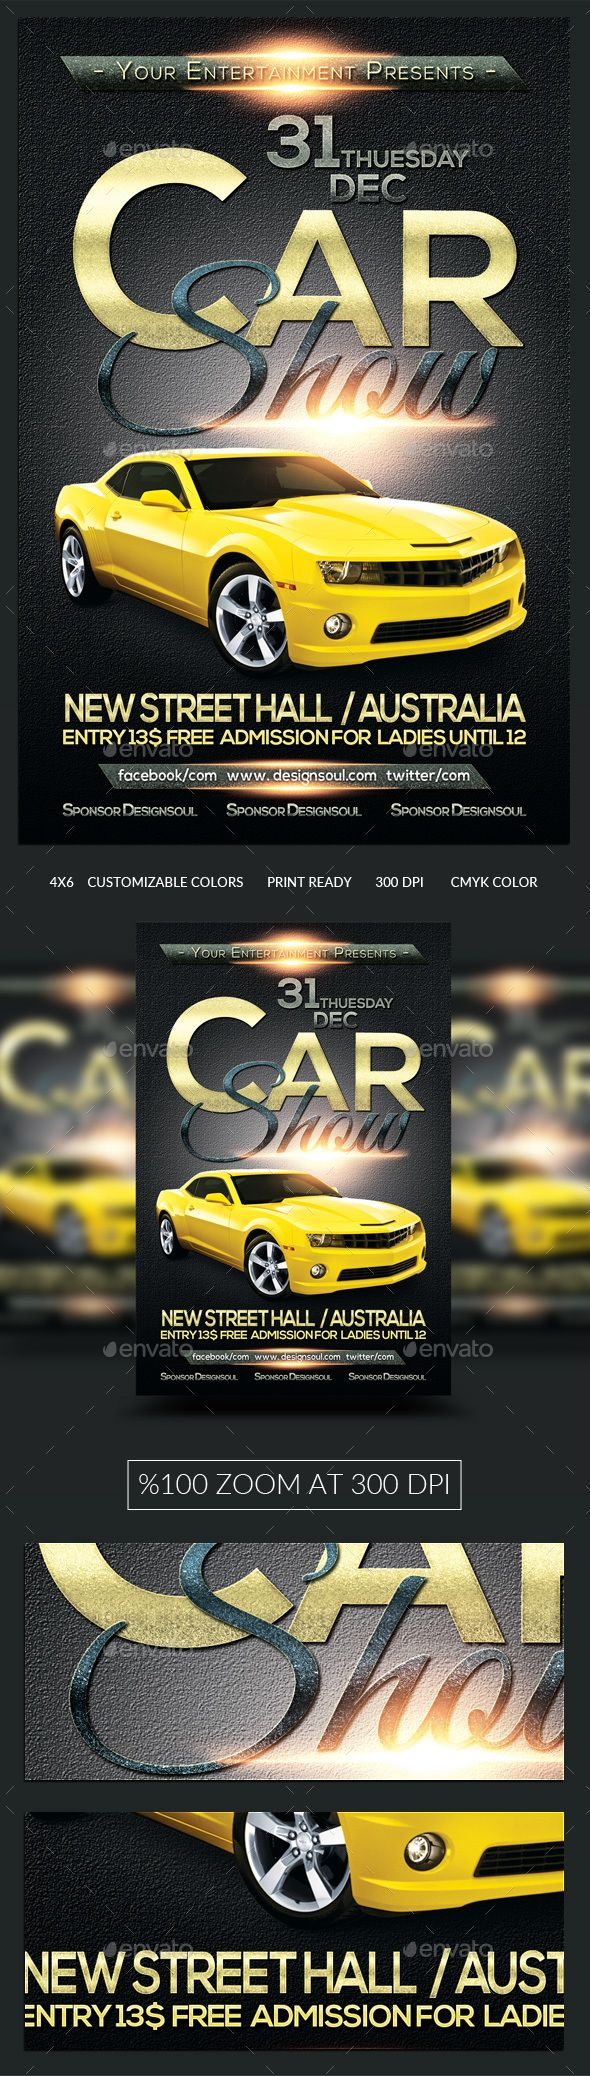 Car Show Flyer Template Psd Design Download HttpGraphicriver